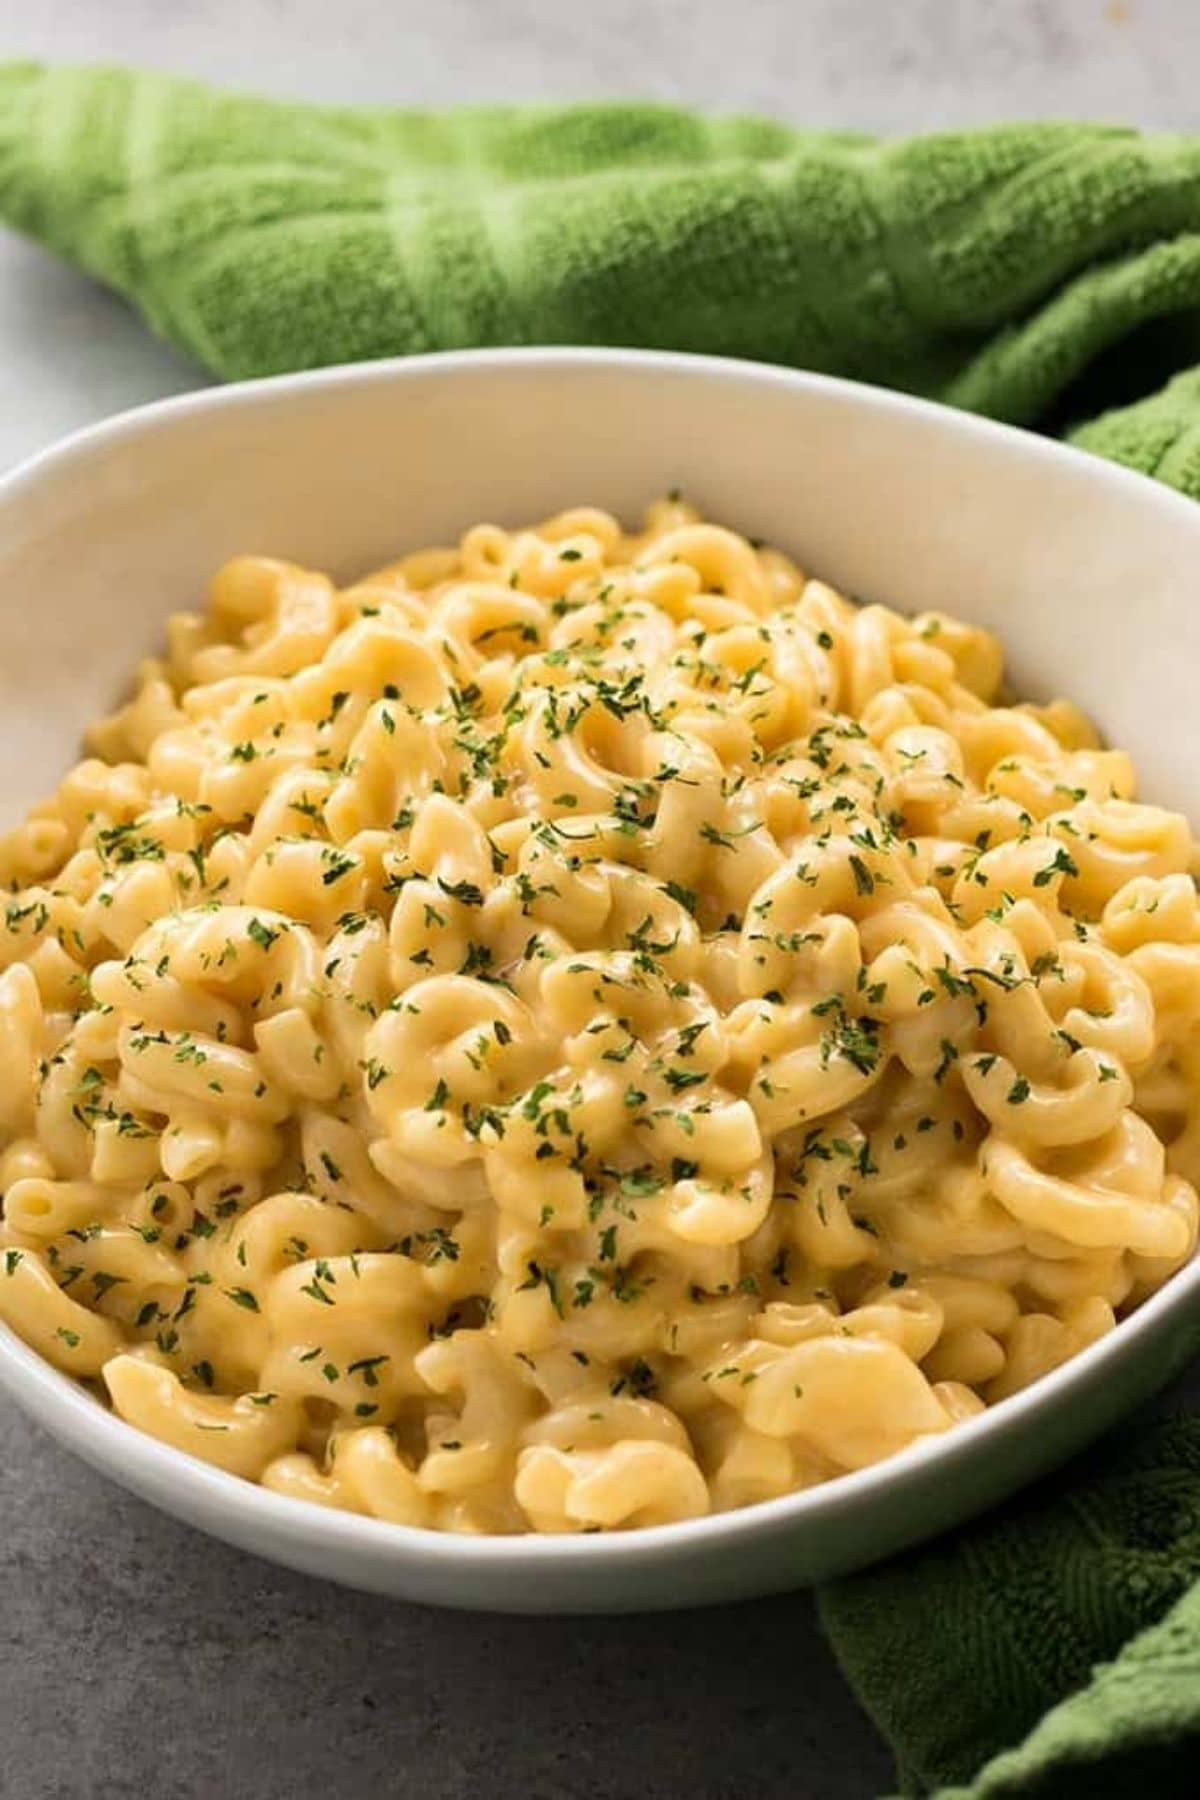 Large white bowl of macaroni and cheese